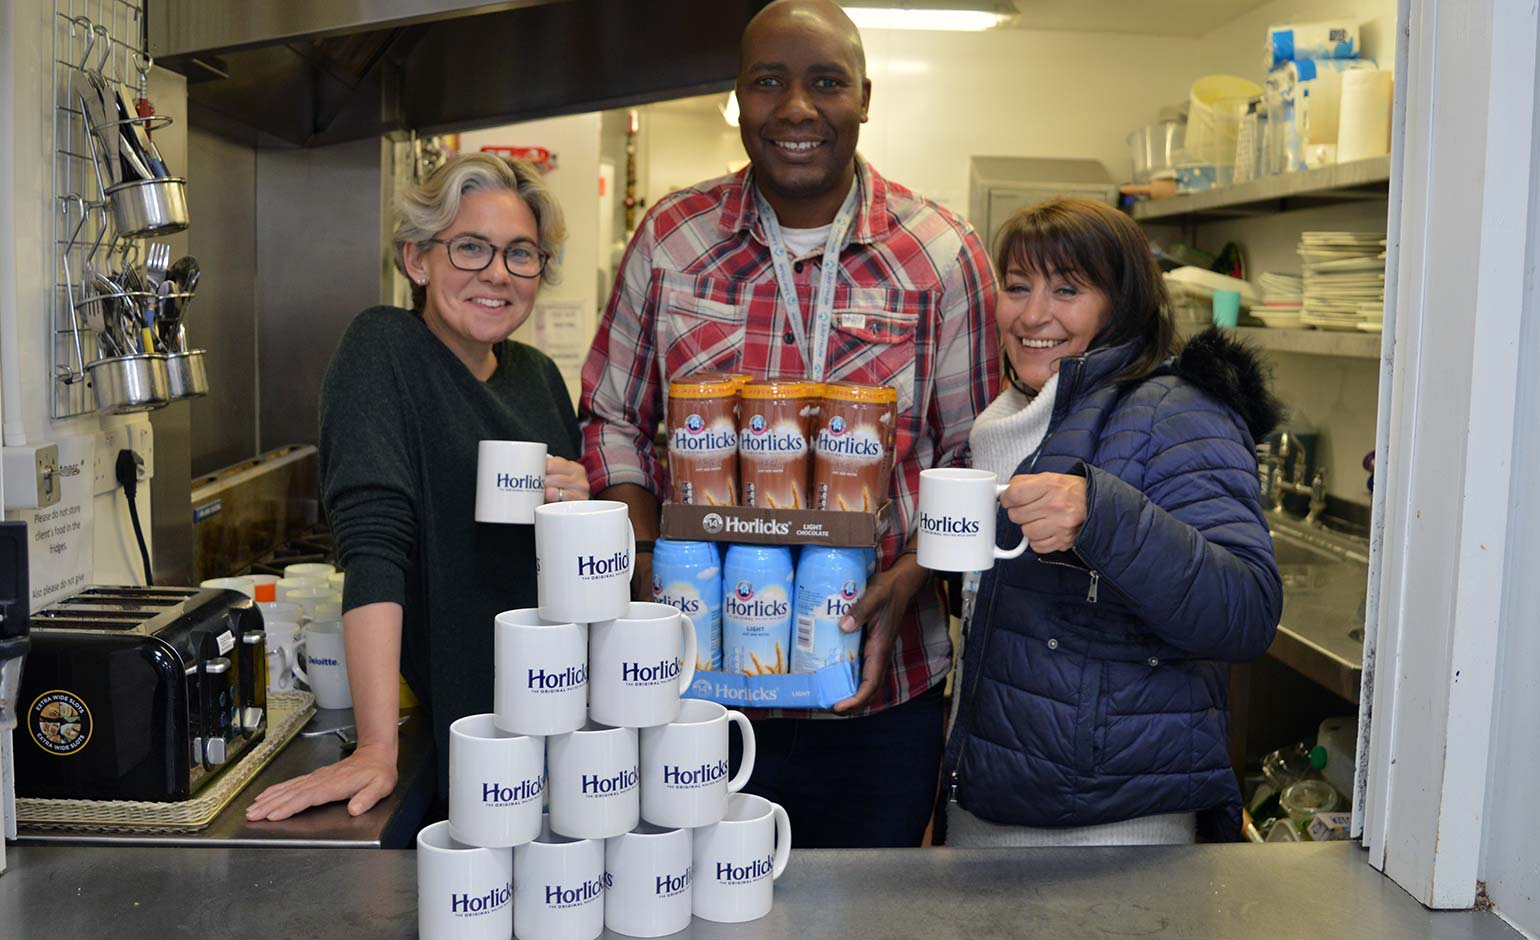 'Much excitement' at Julian House hostel thanks to special Horlicks donation | Bath Echo